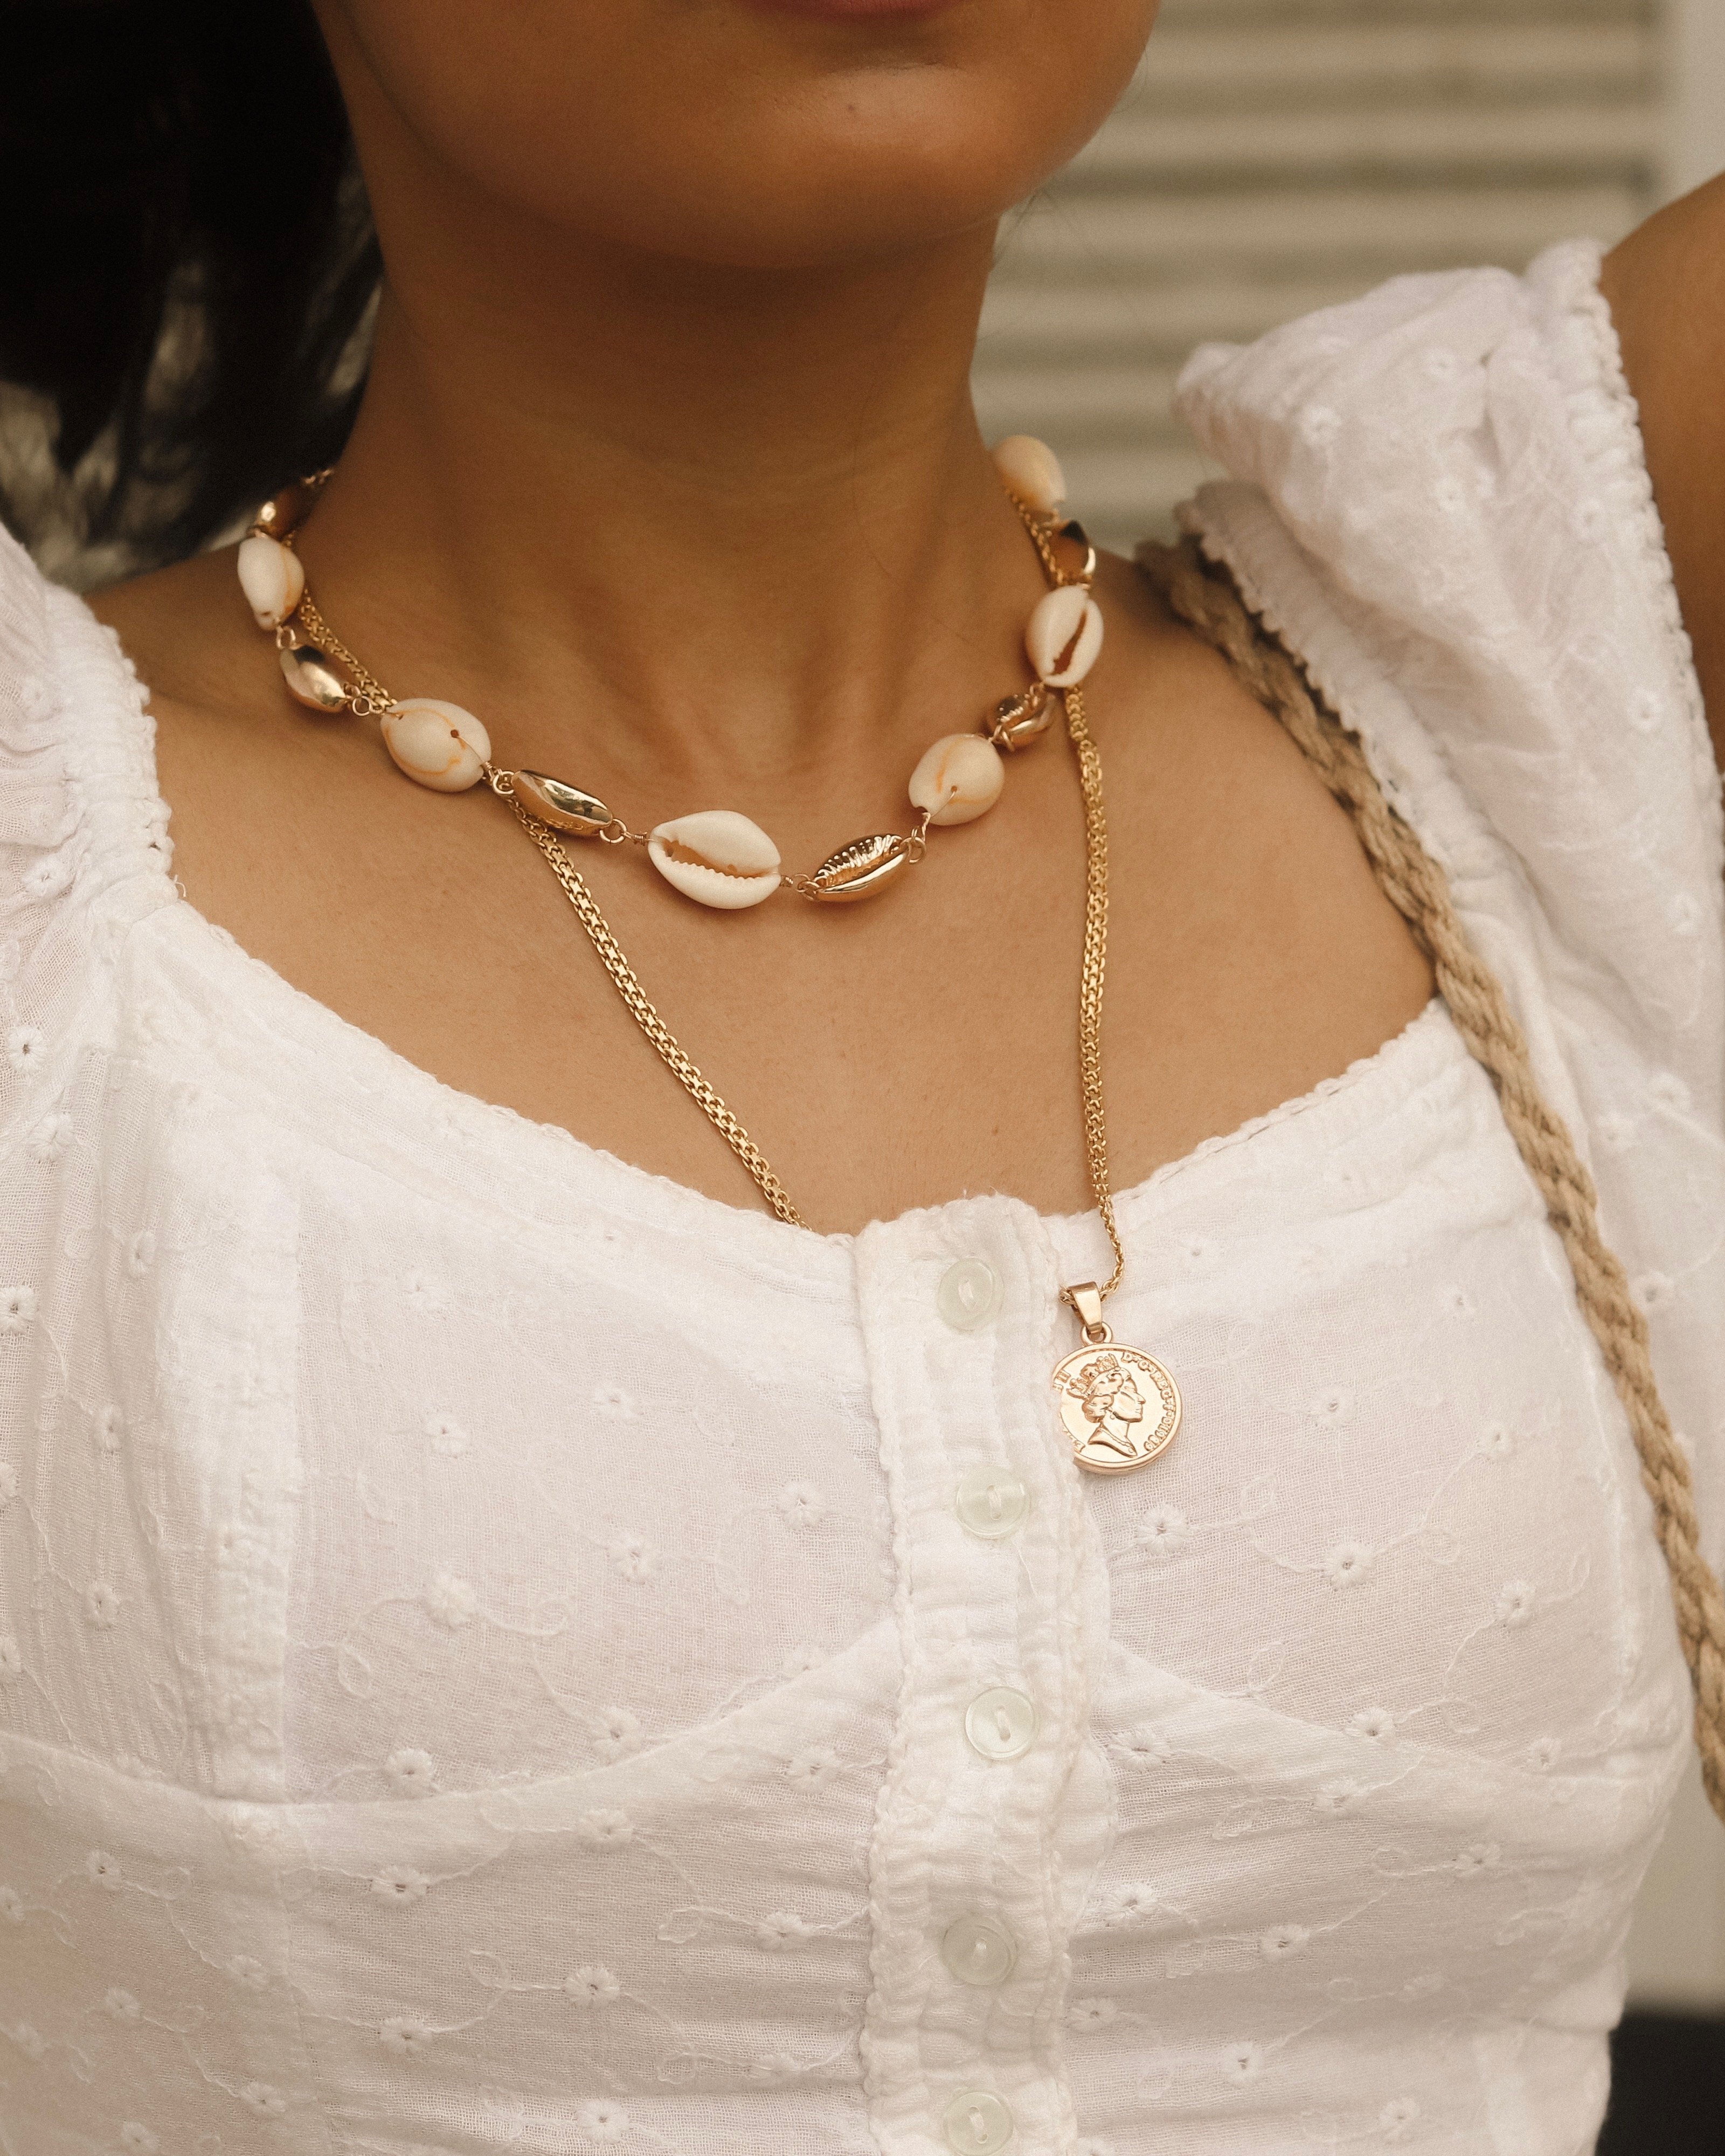 Shell jewellery in Trend -Prity Singh